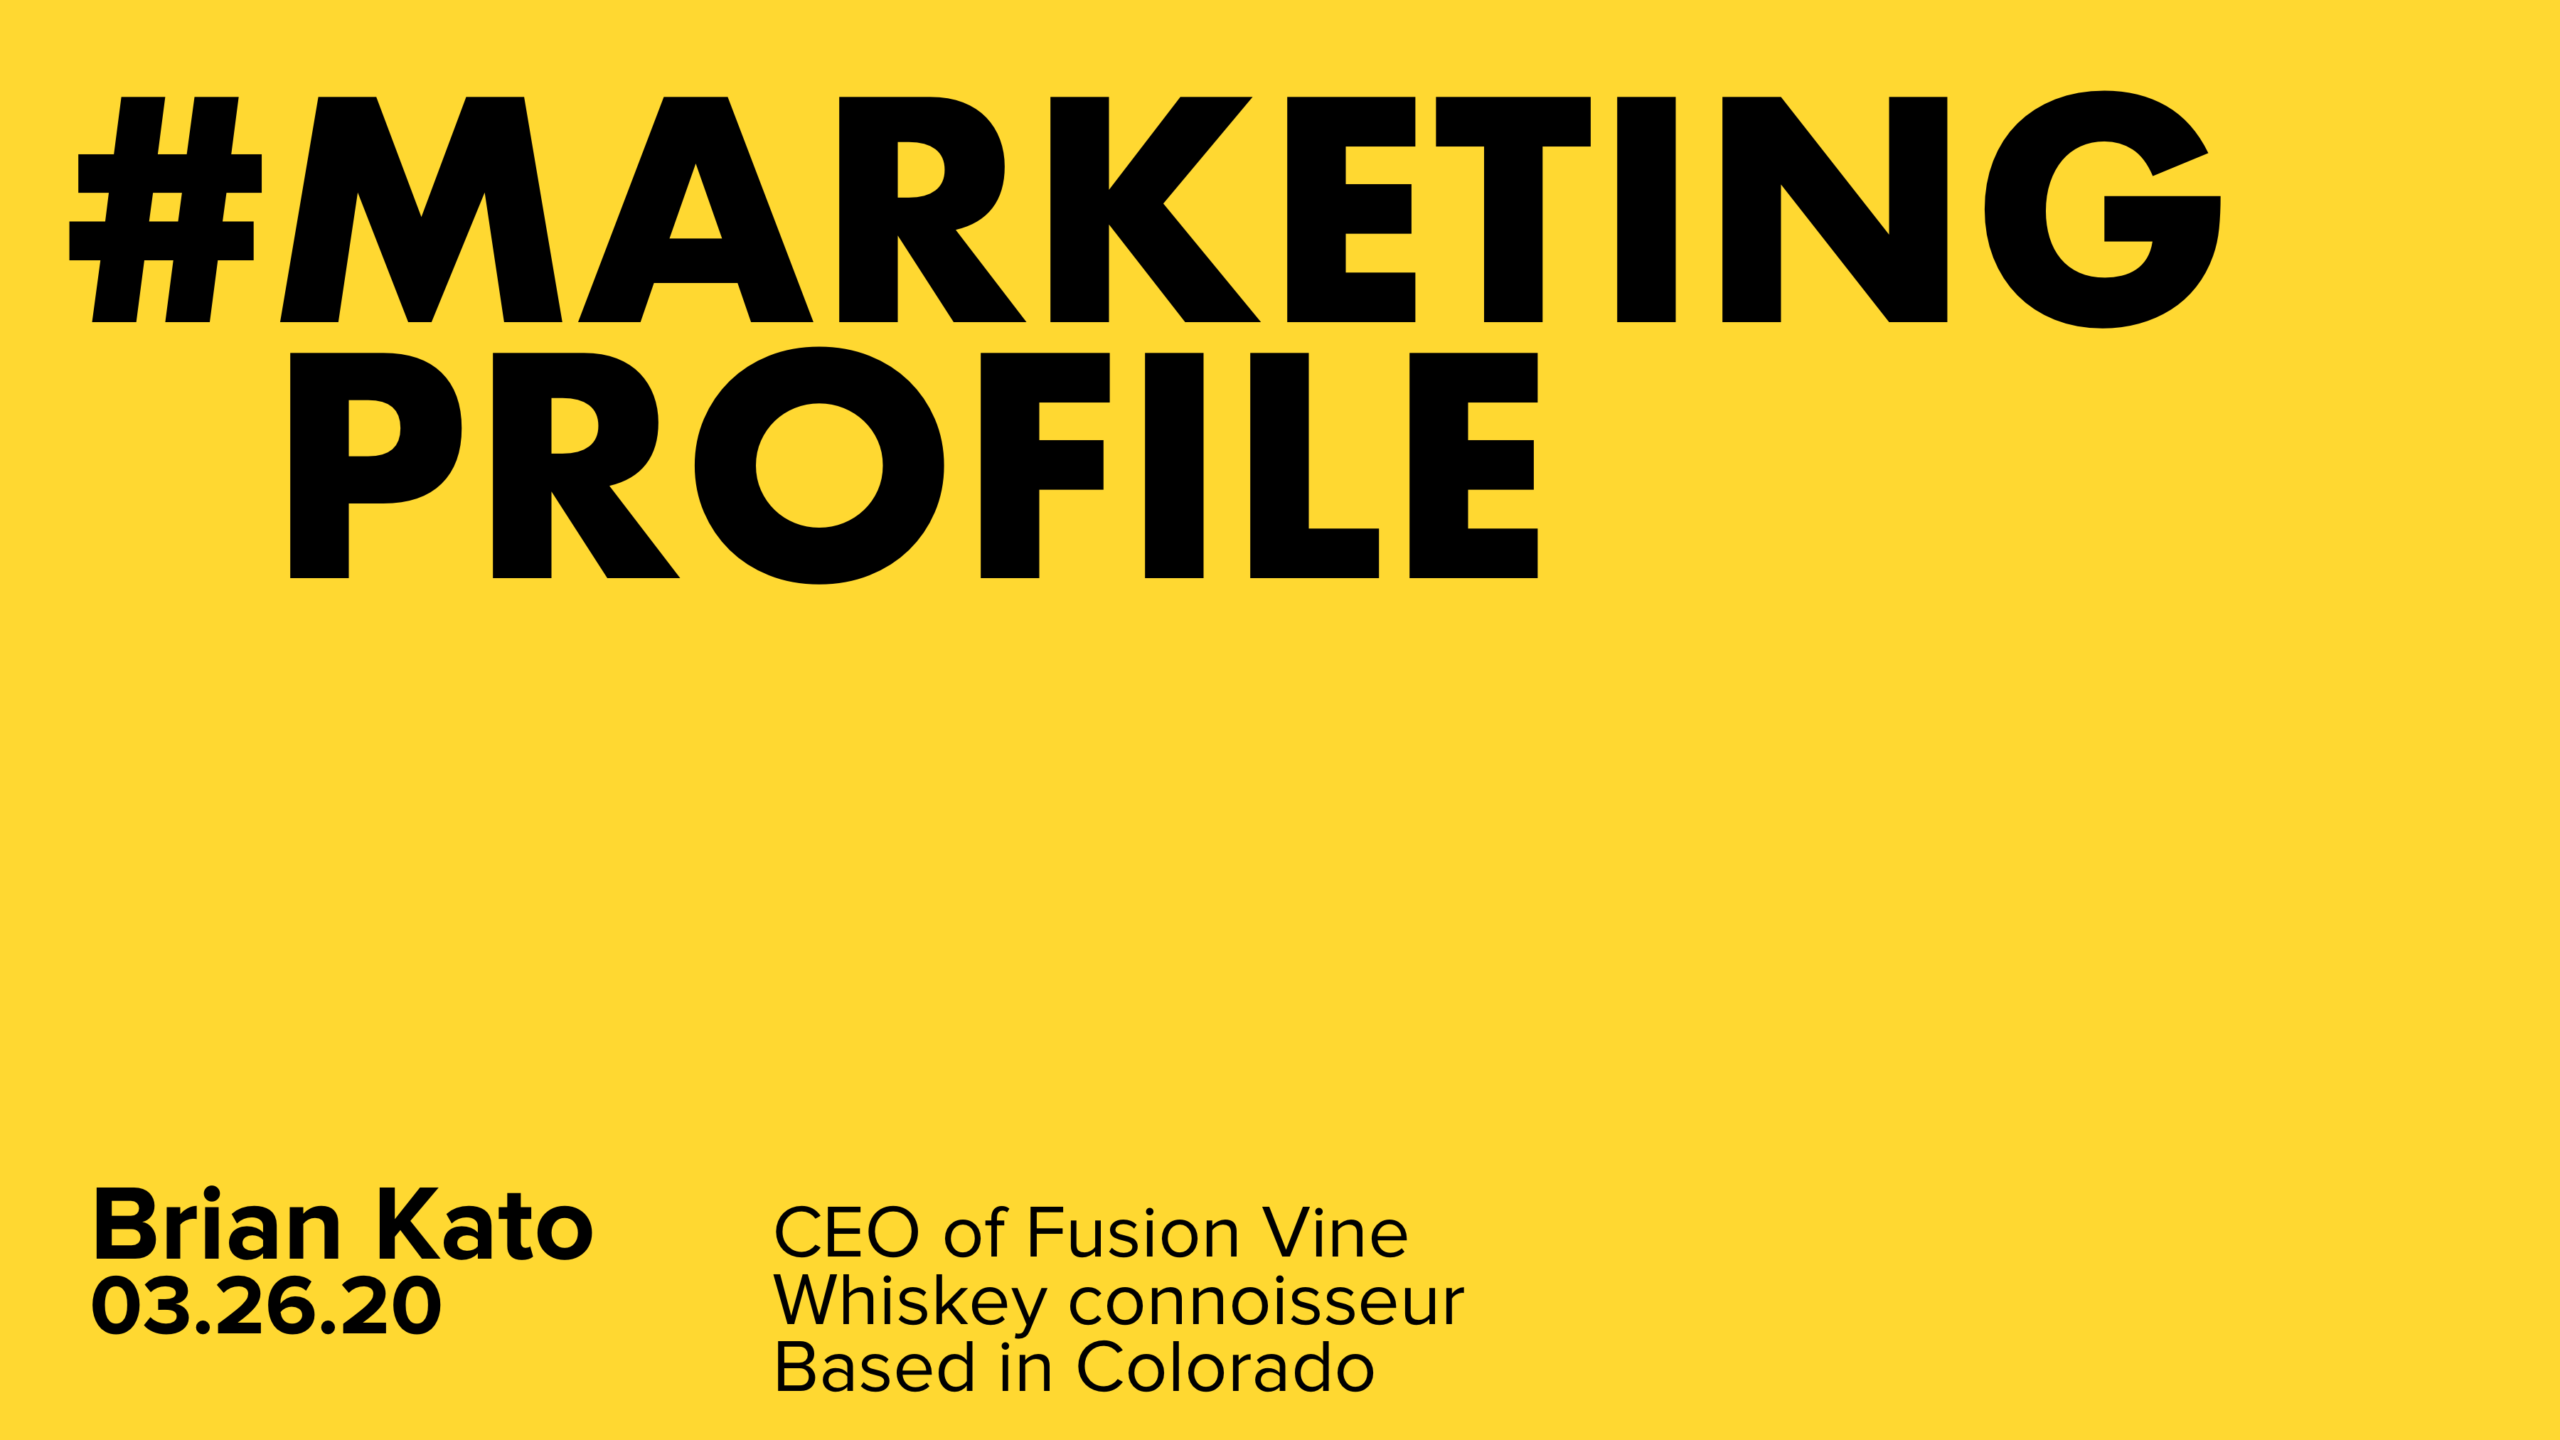 Marketing Profile - Brian Kato, Fusion Vine